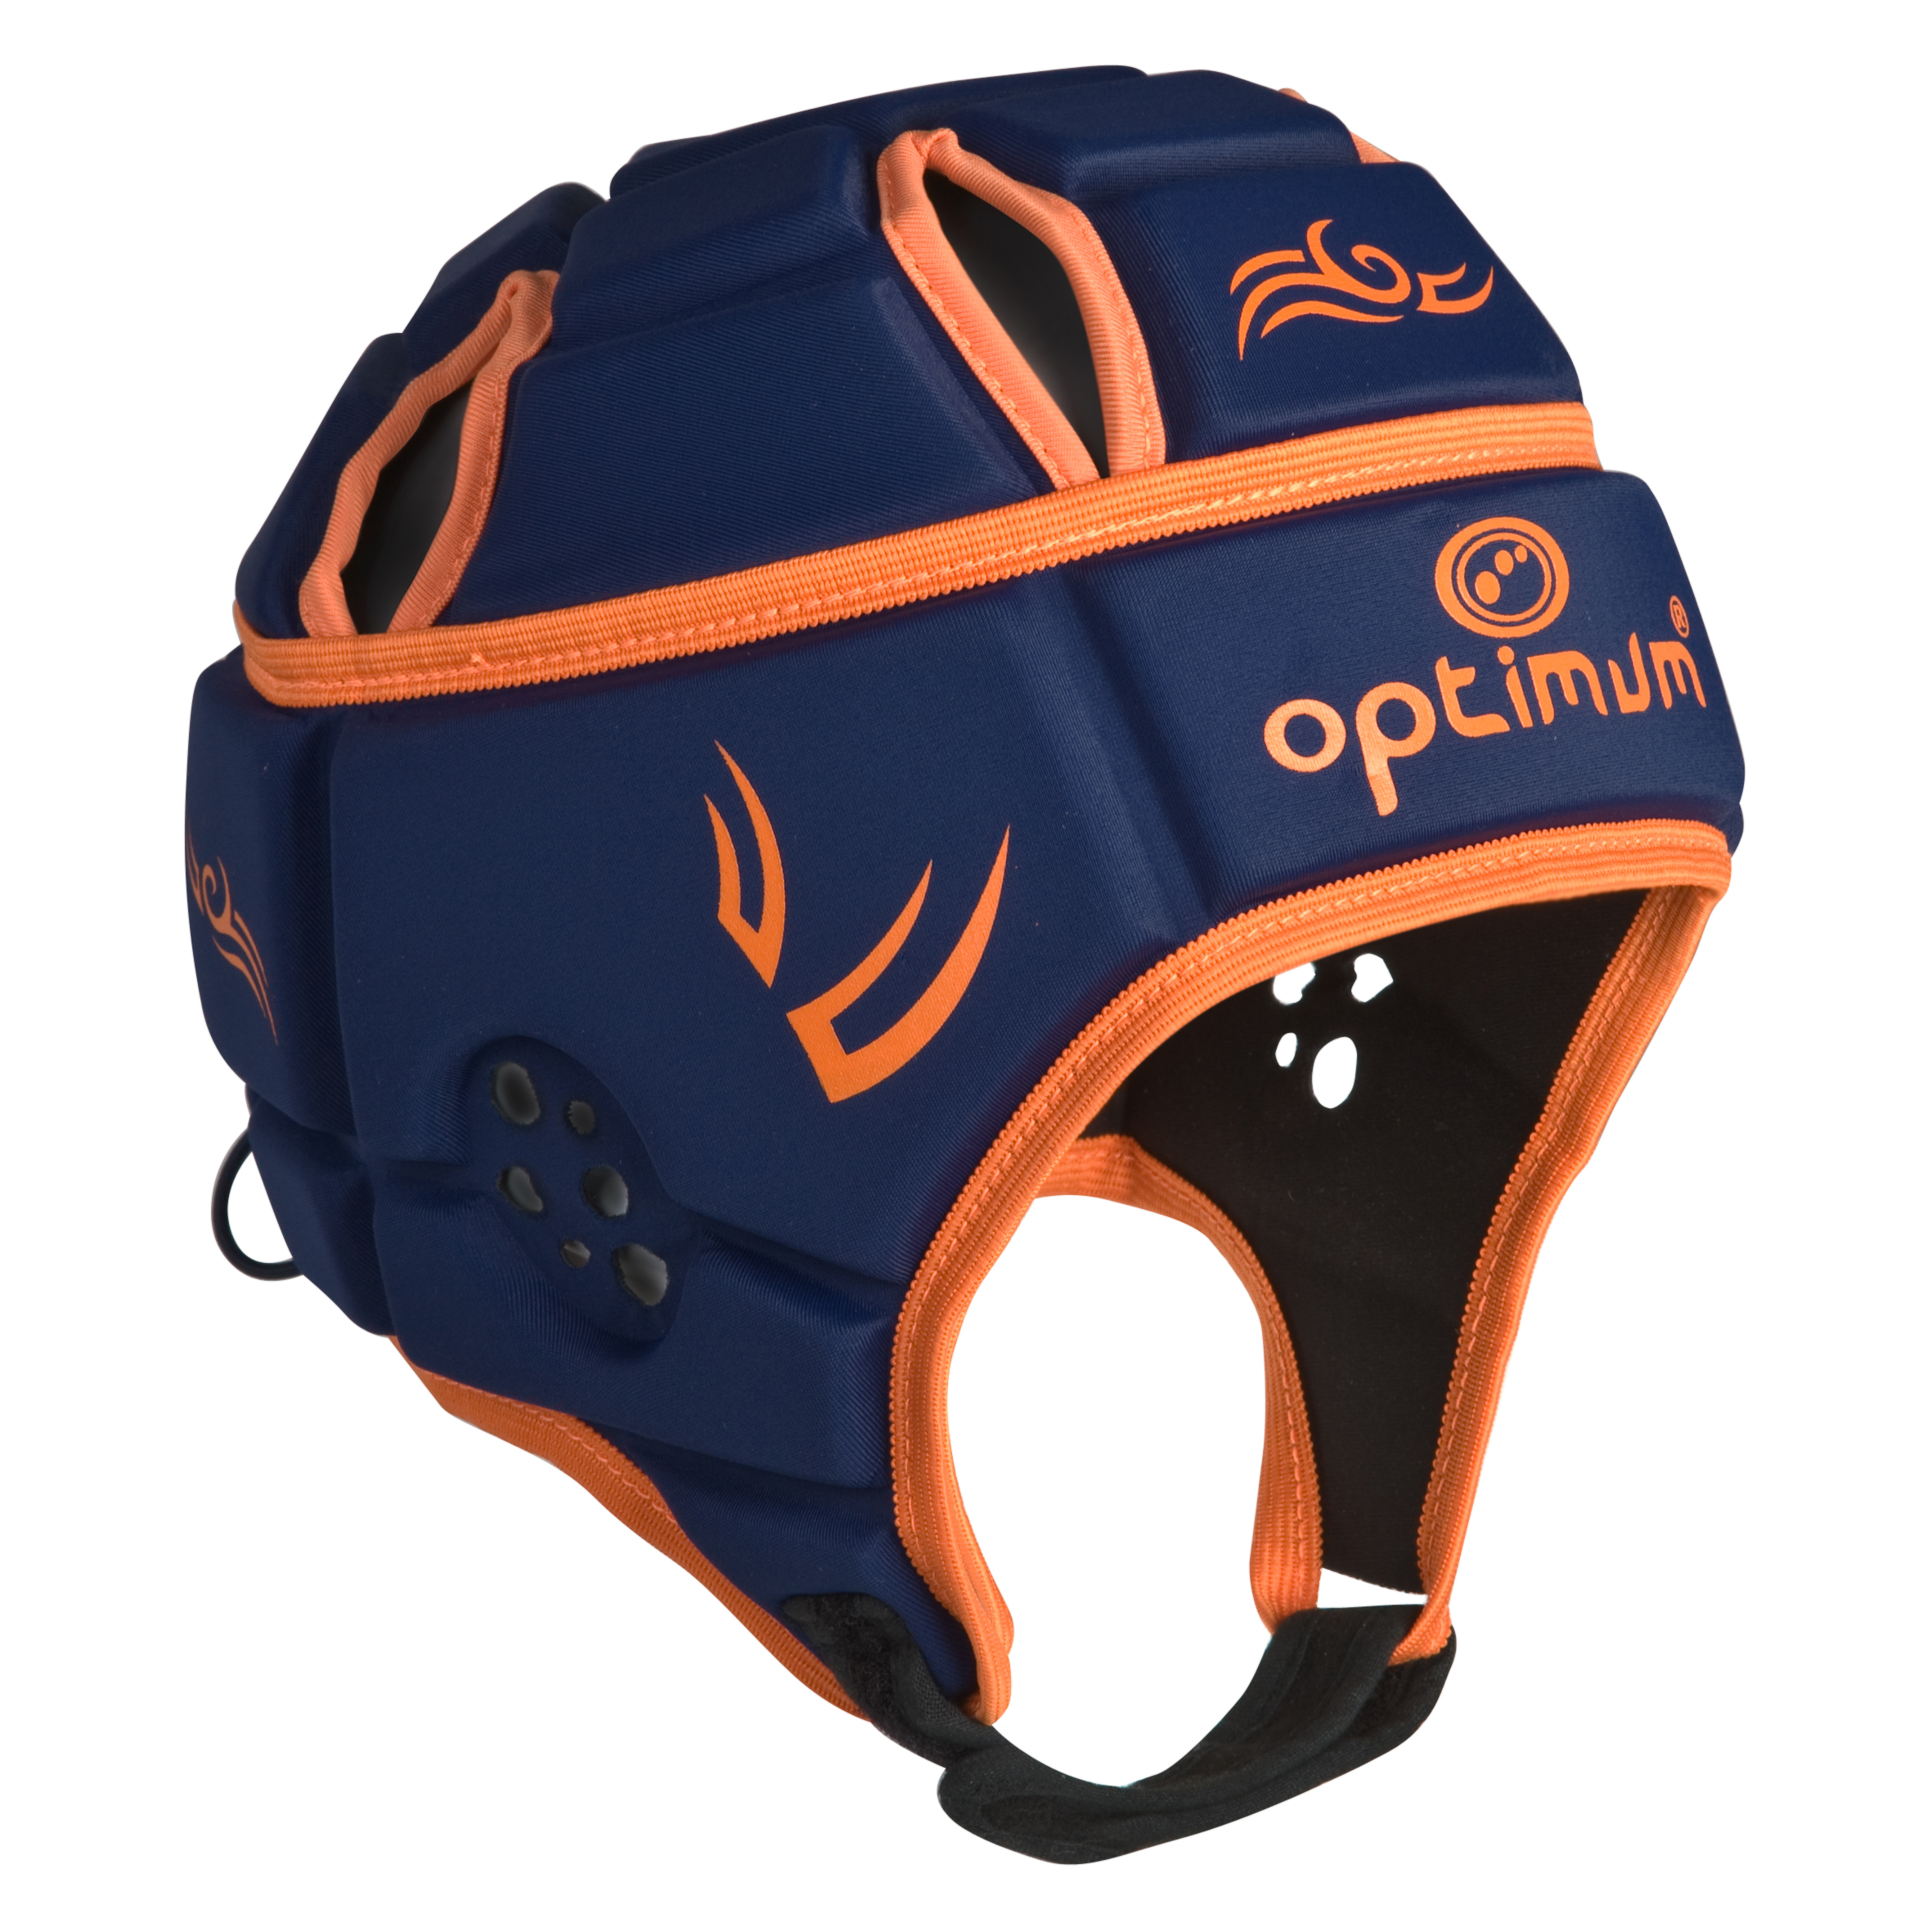 Optimum Hedweb Classic Tribal Headguard - Navy/Orange